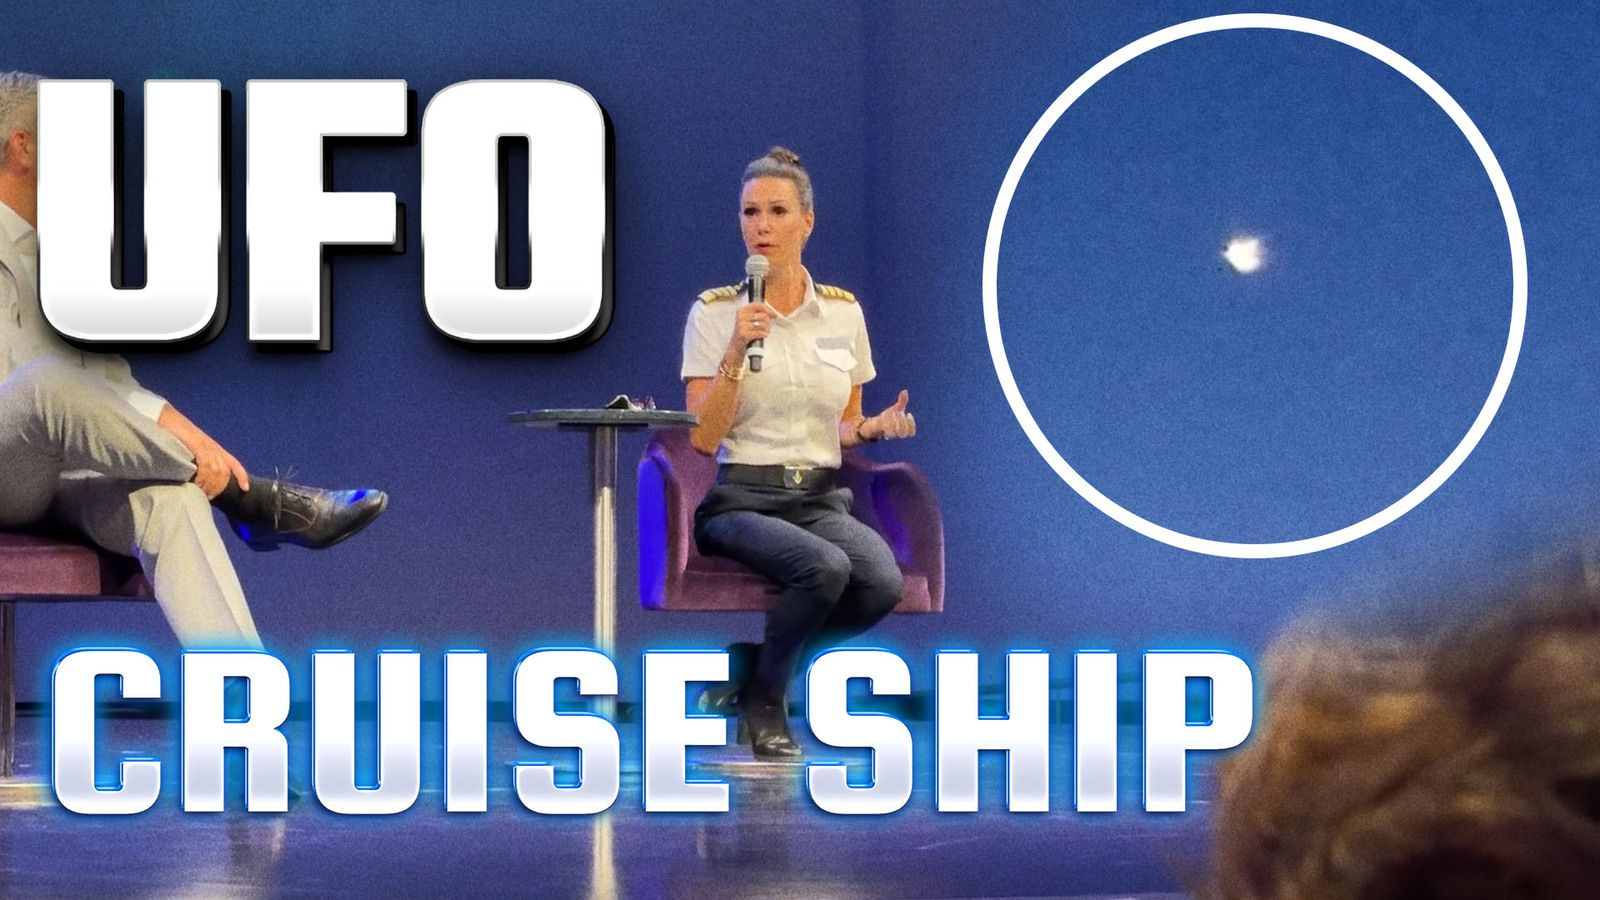 CAPTAIN CAPTURES UFO VIDEO ON CRUISE SHIP 👽